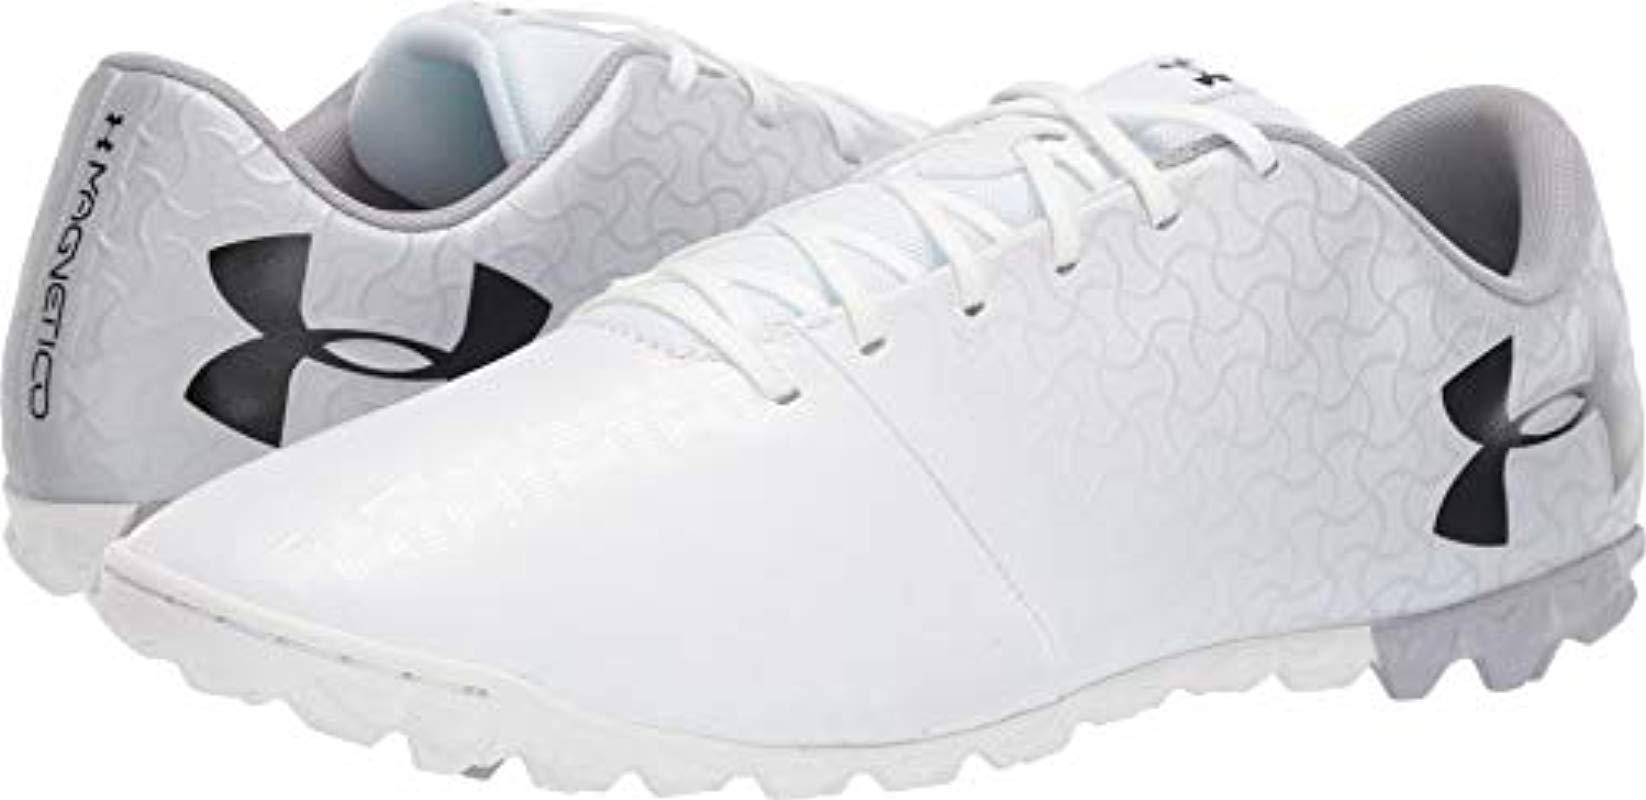 84bdce93f Lyst - Under Armour Magnetico Select Turf Soccer Shoe in Metallic ...